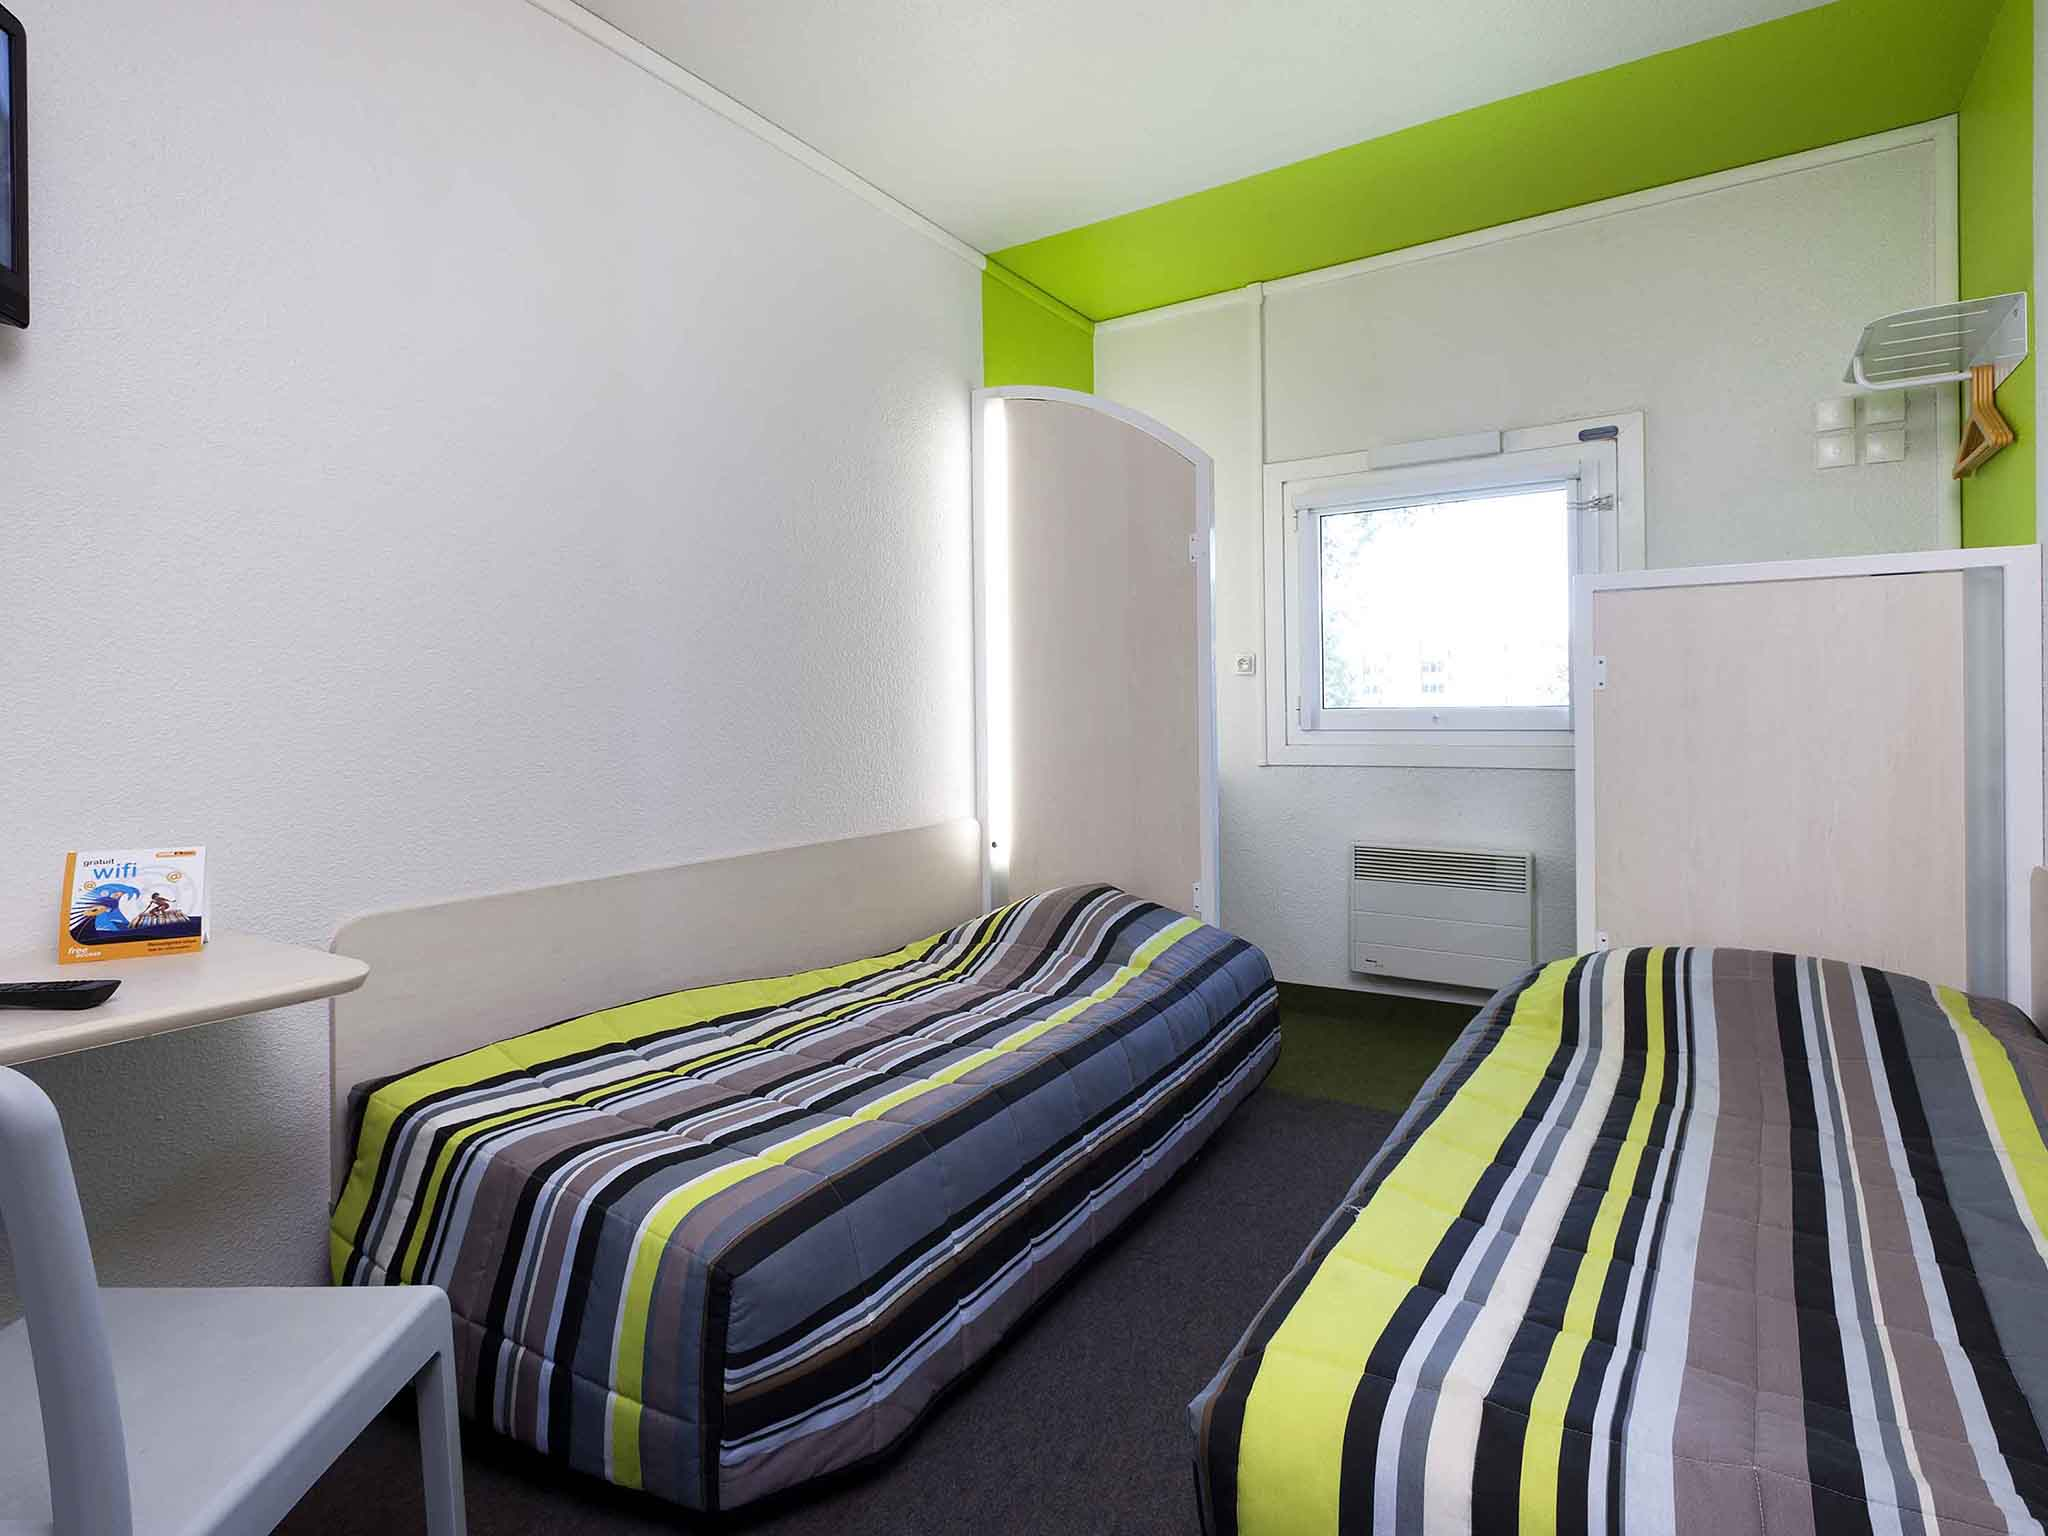 Hotell – hotelF1 Nevers Nord